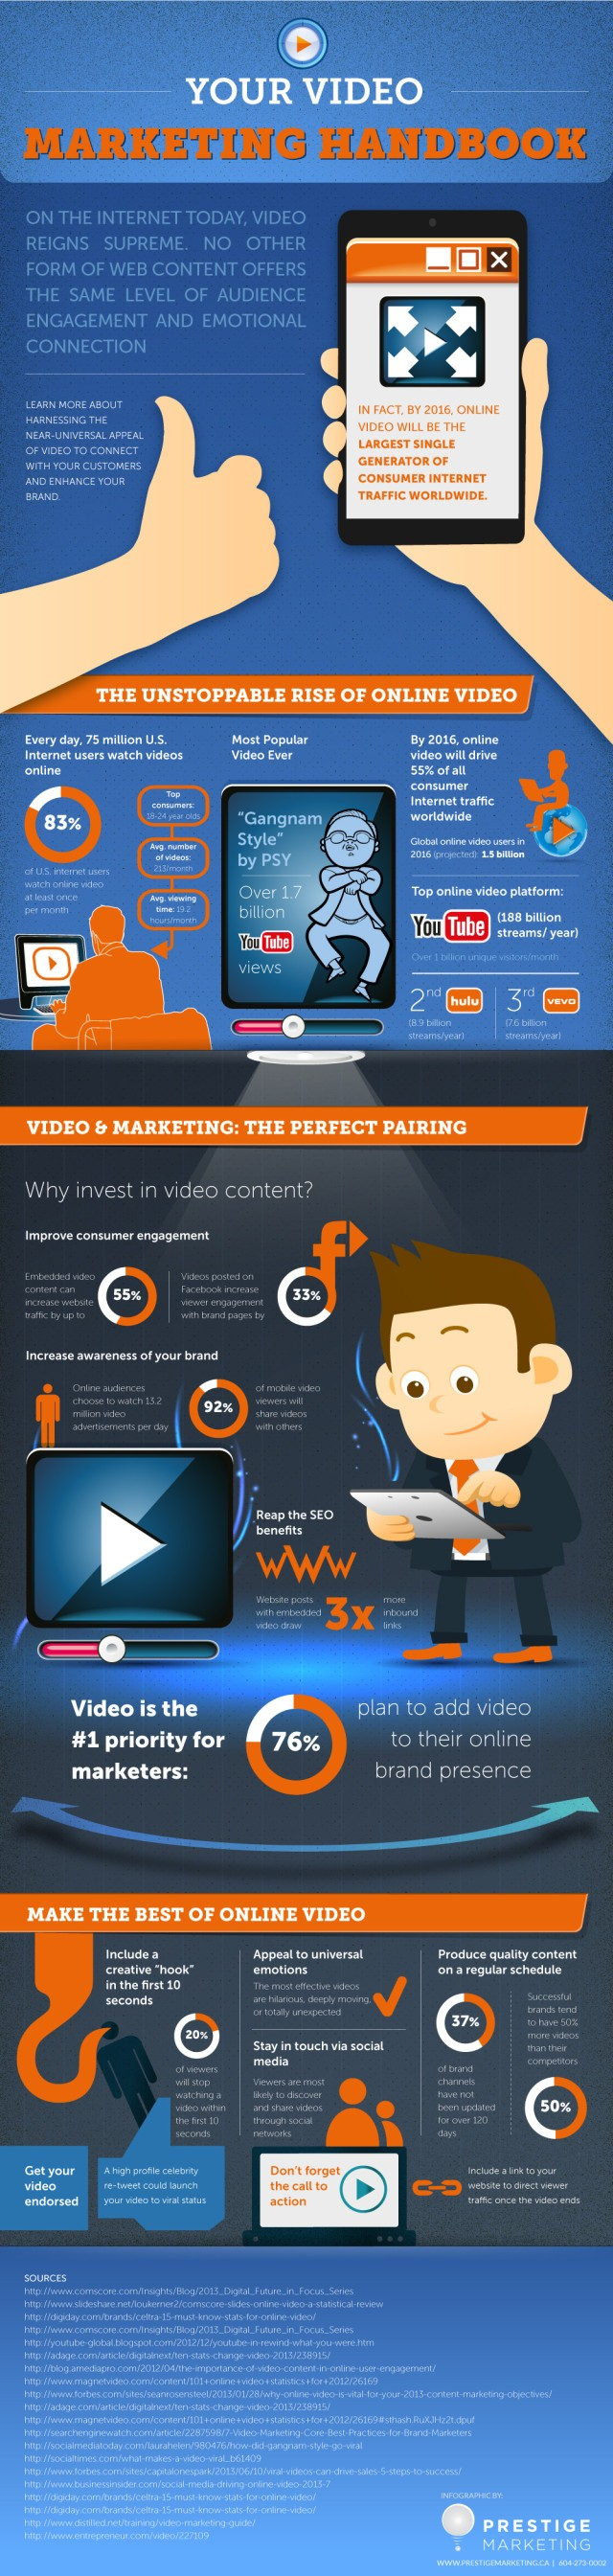 "Quelle: <a href=""http://www.prestigemarketing.ca/blog/your-video-marketing-handbook-infographic/"">Prestige Marketing</a>"